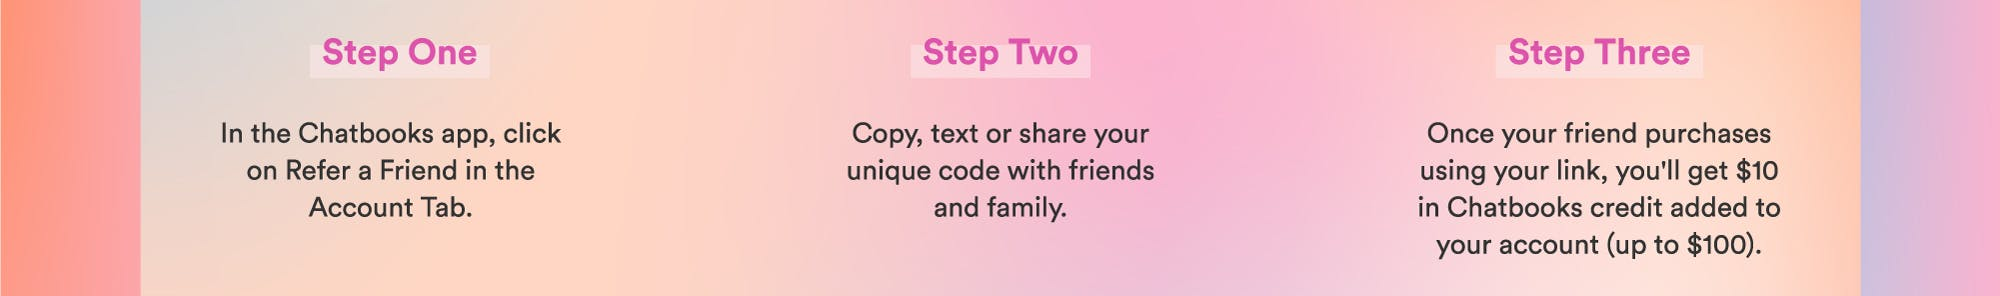 Step One: In the Chatbooks app click on refer a friend in the account tab.  Step Two: Copy, text or share your unique code with friends and family.   Step Three: Once y our friend purchases using your link, you'll get Chatbooks credit added to your account (up to \u0024100).